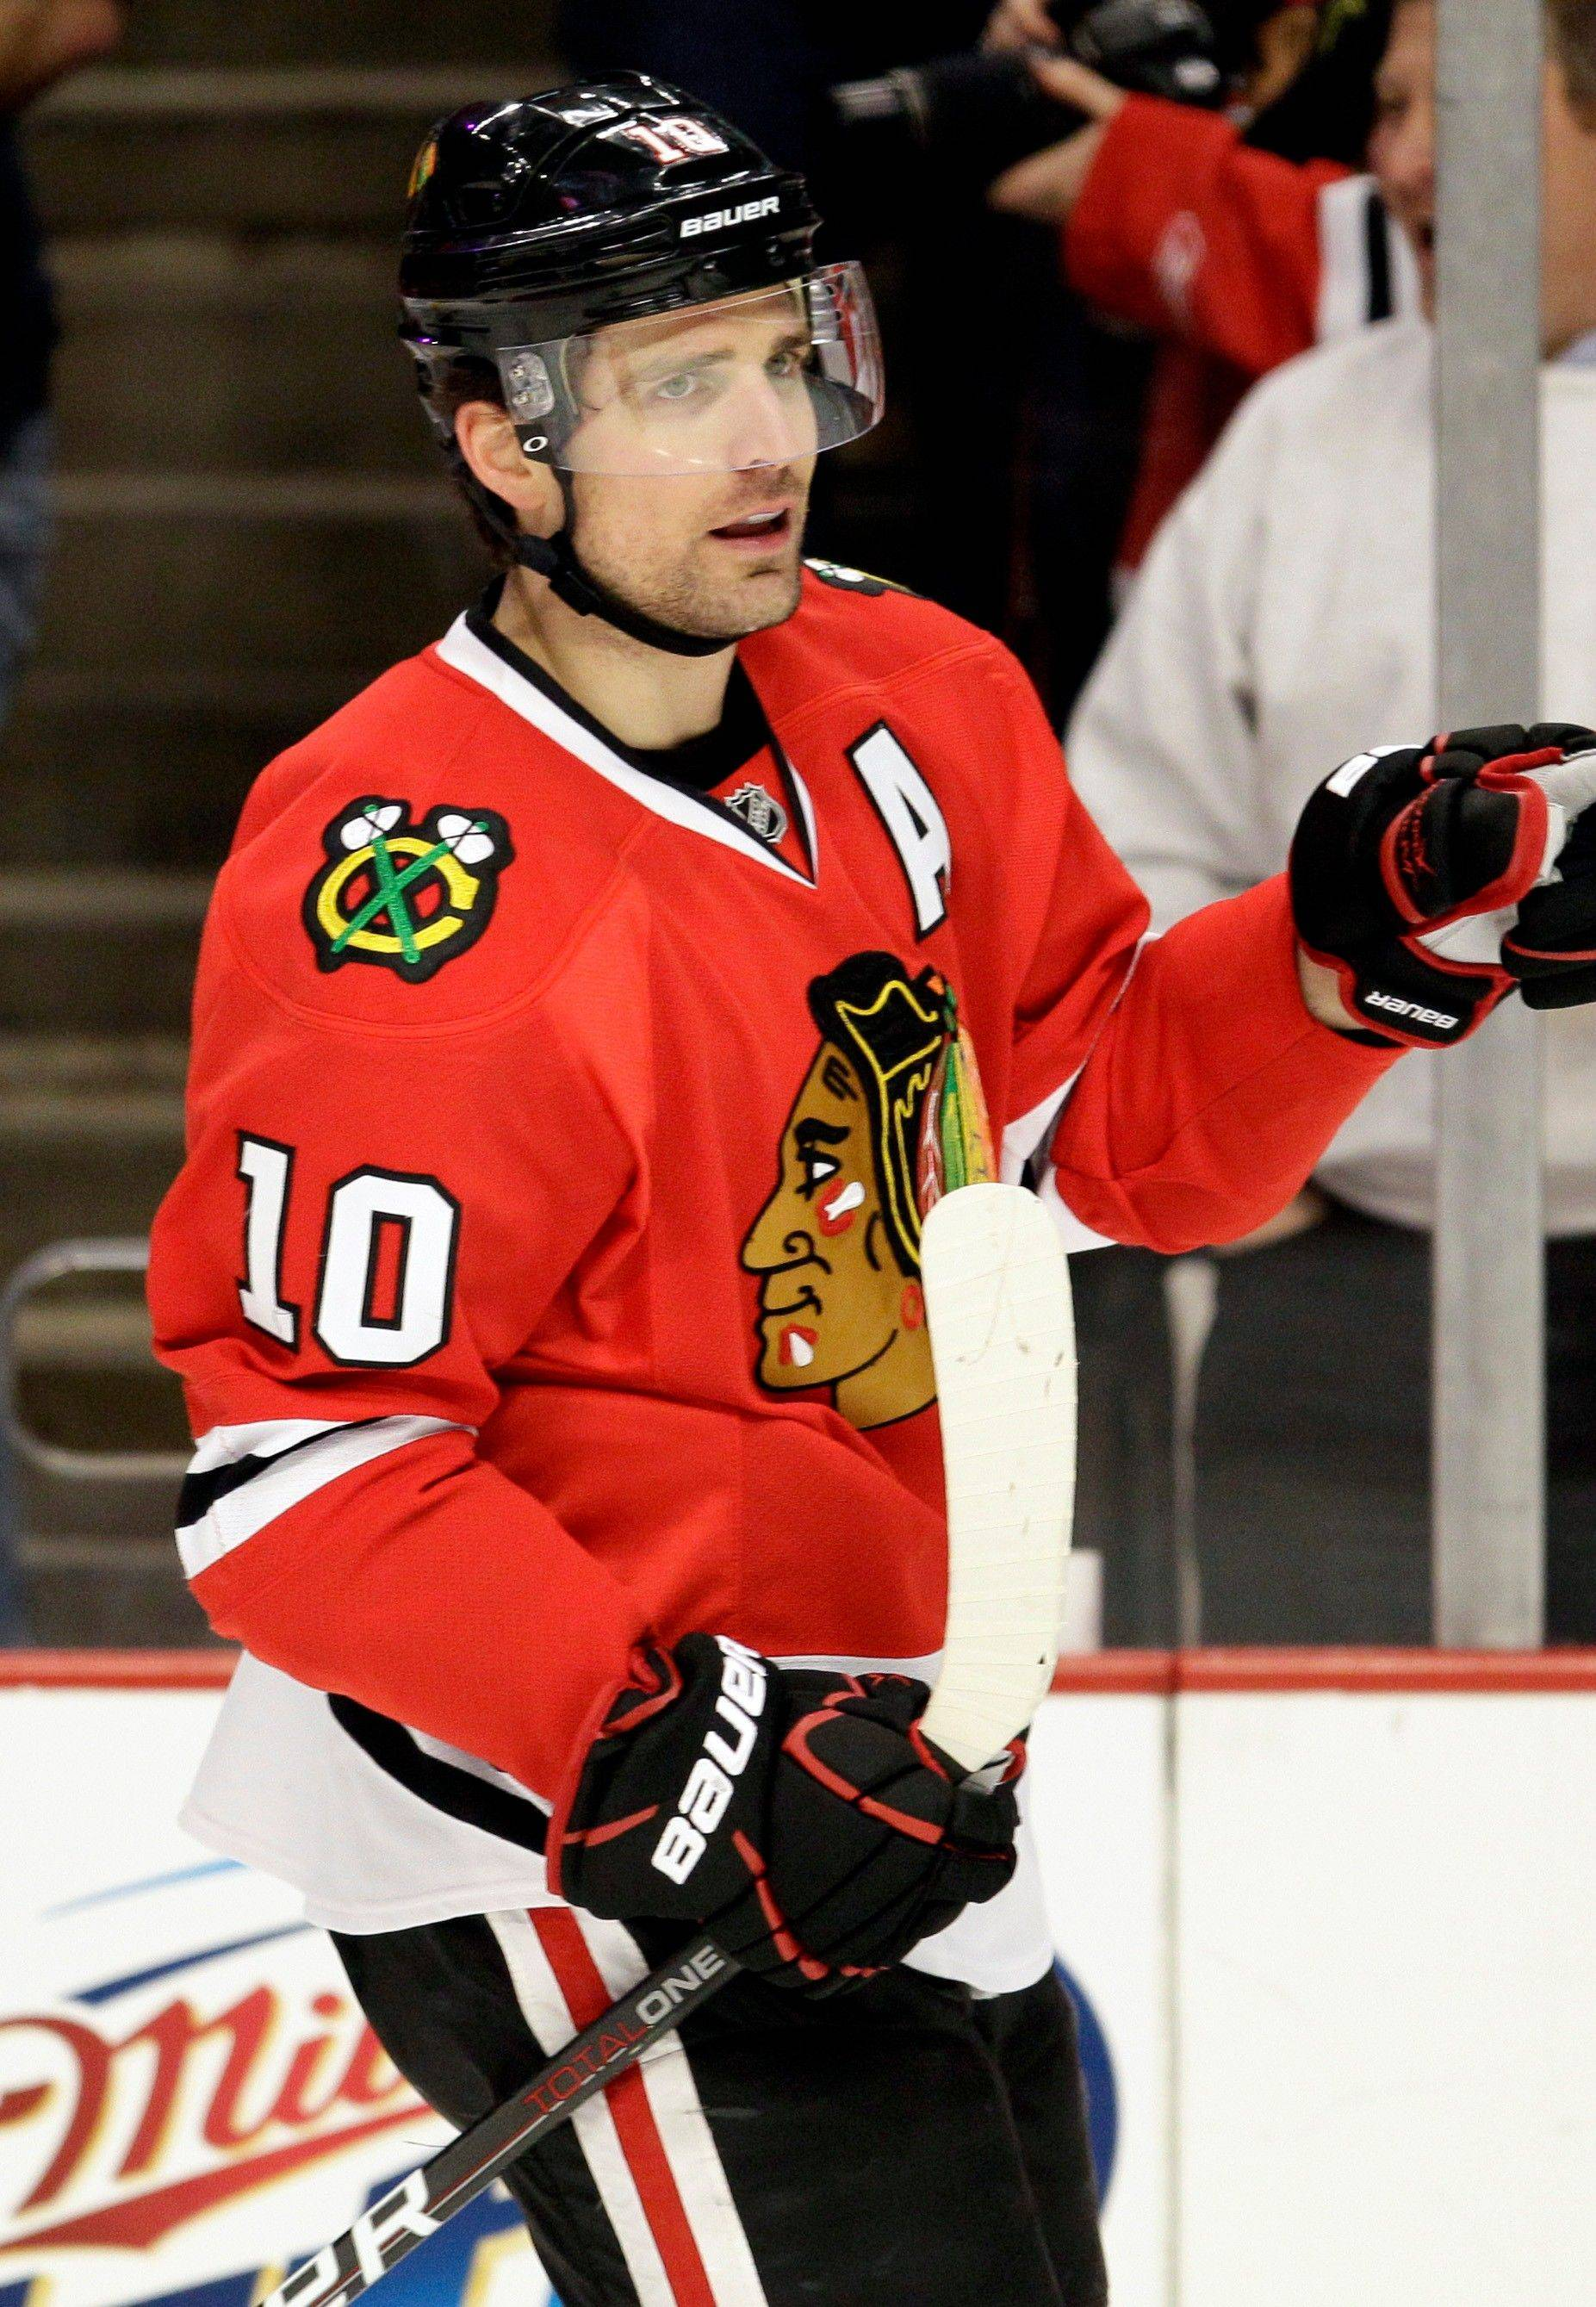 The Blackhawks' Patrick Sharp points after scoring a goal during the first period Sunday against the Red Wings.